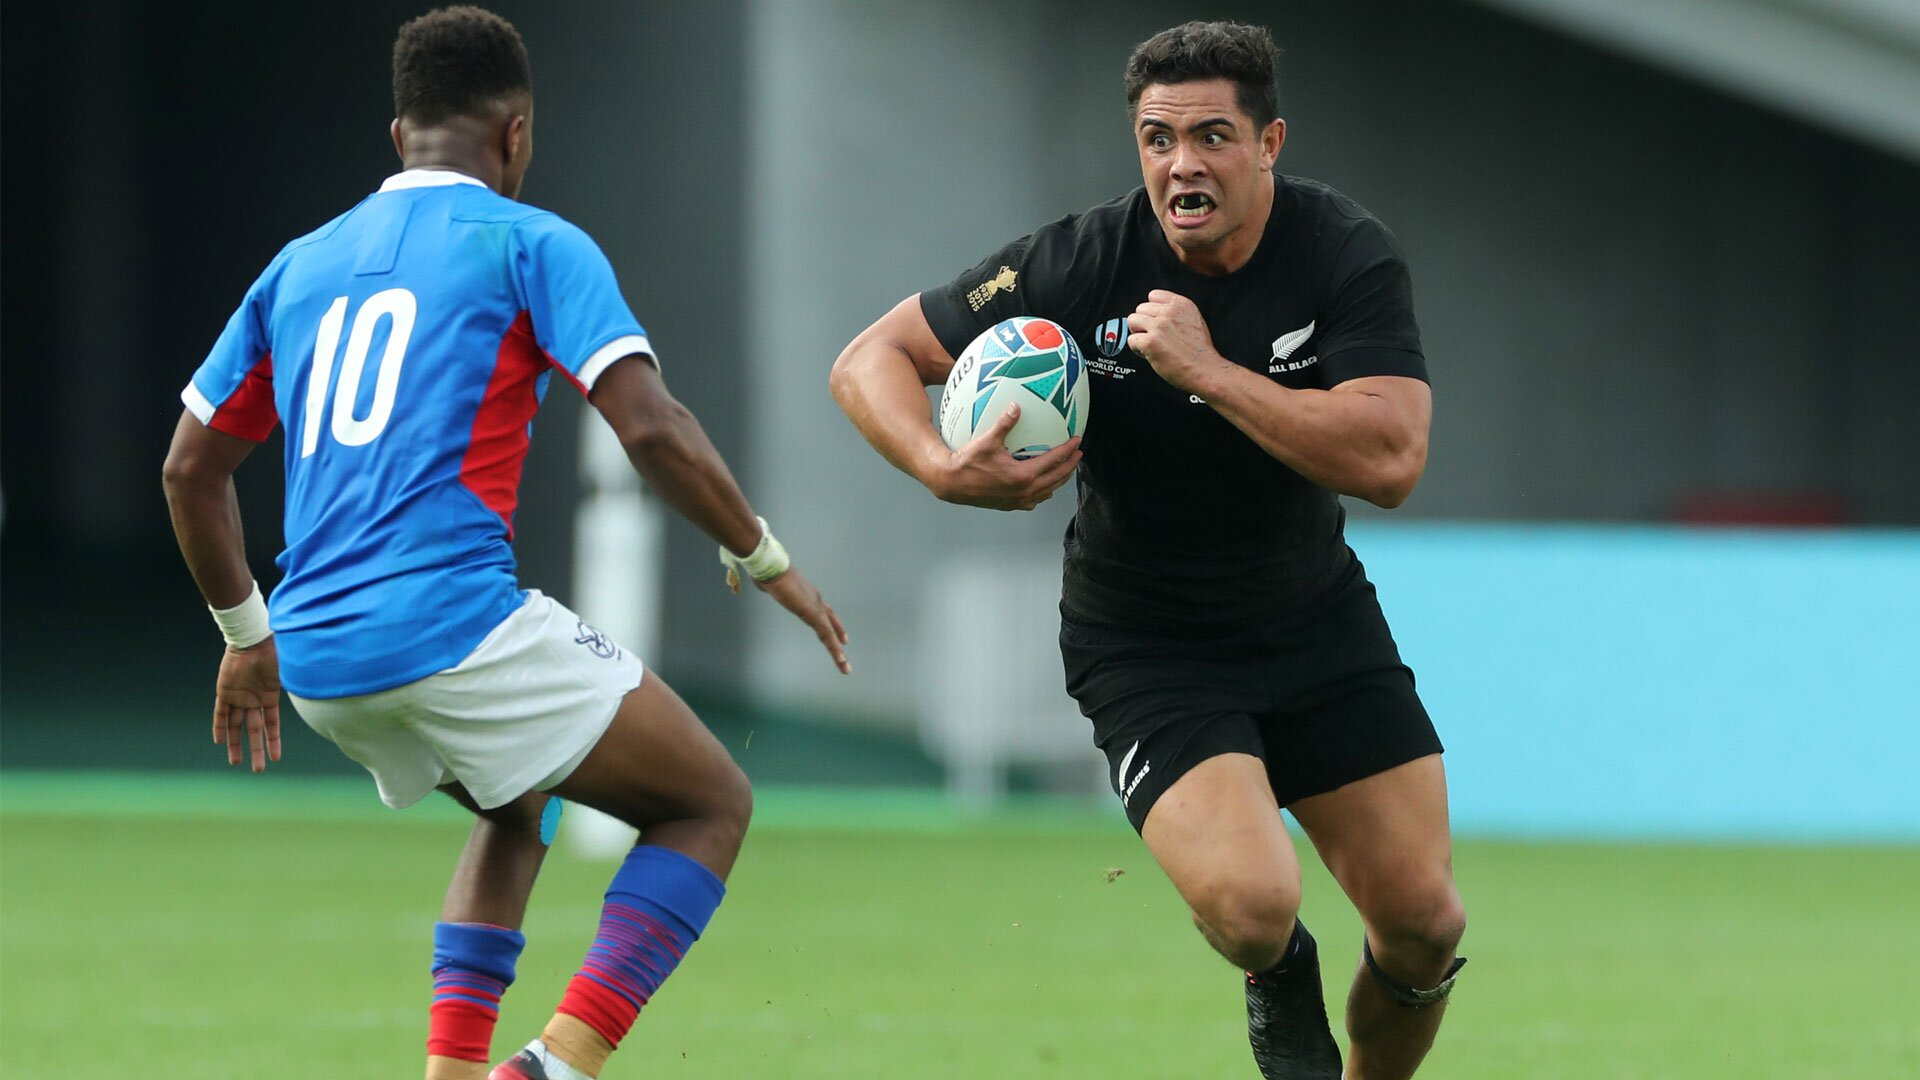 'I felt as though I'd embarrassed myself on a world stage': All Blacks midfielder's revelations